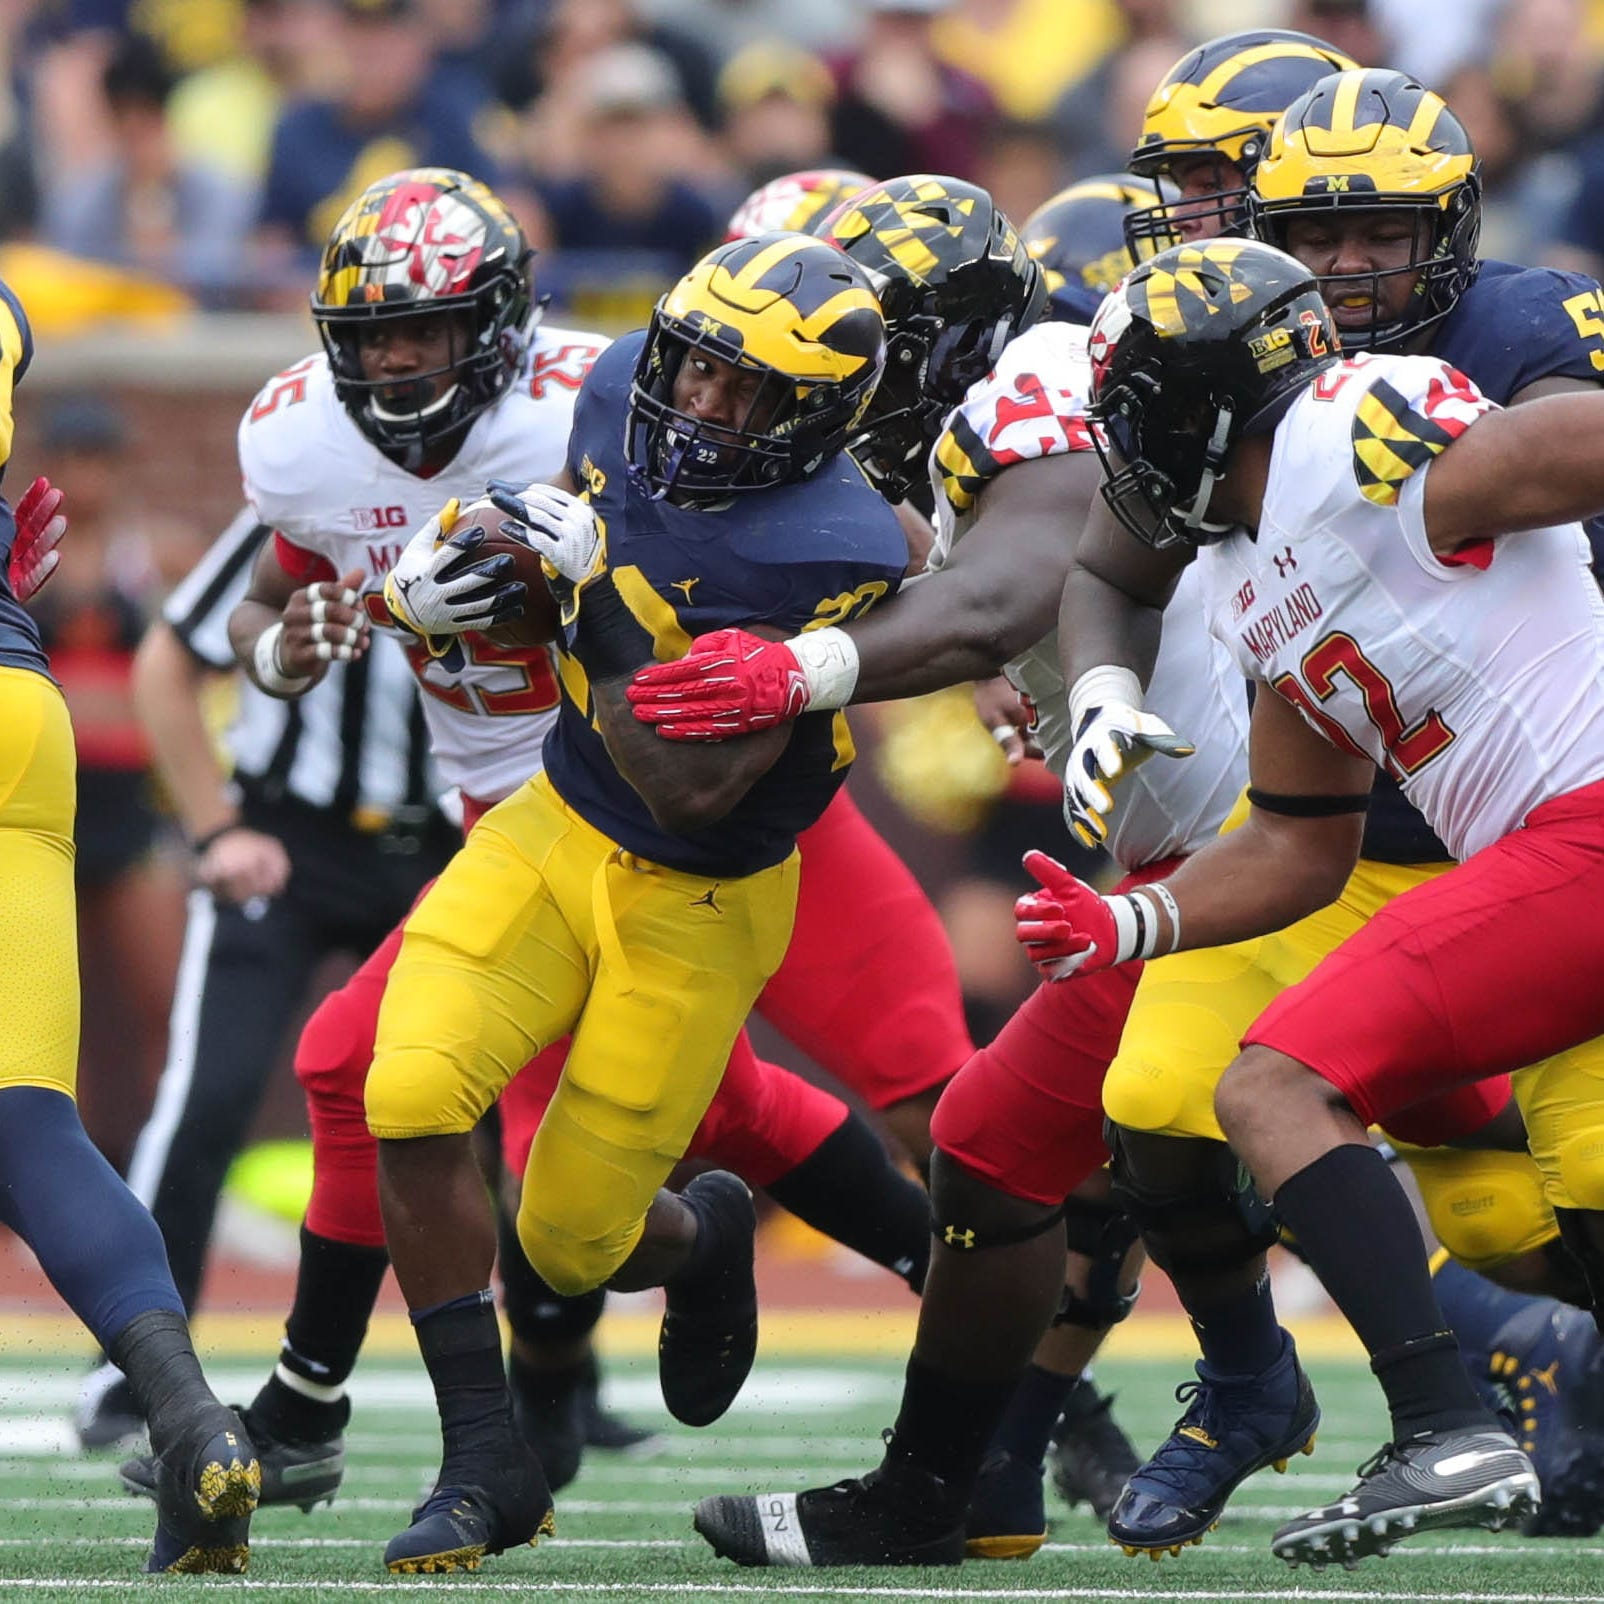 Michigan football rises in USA TODAY poll; Michigan State falls out